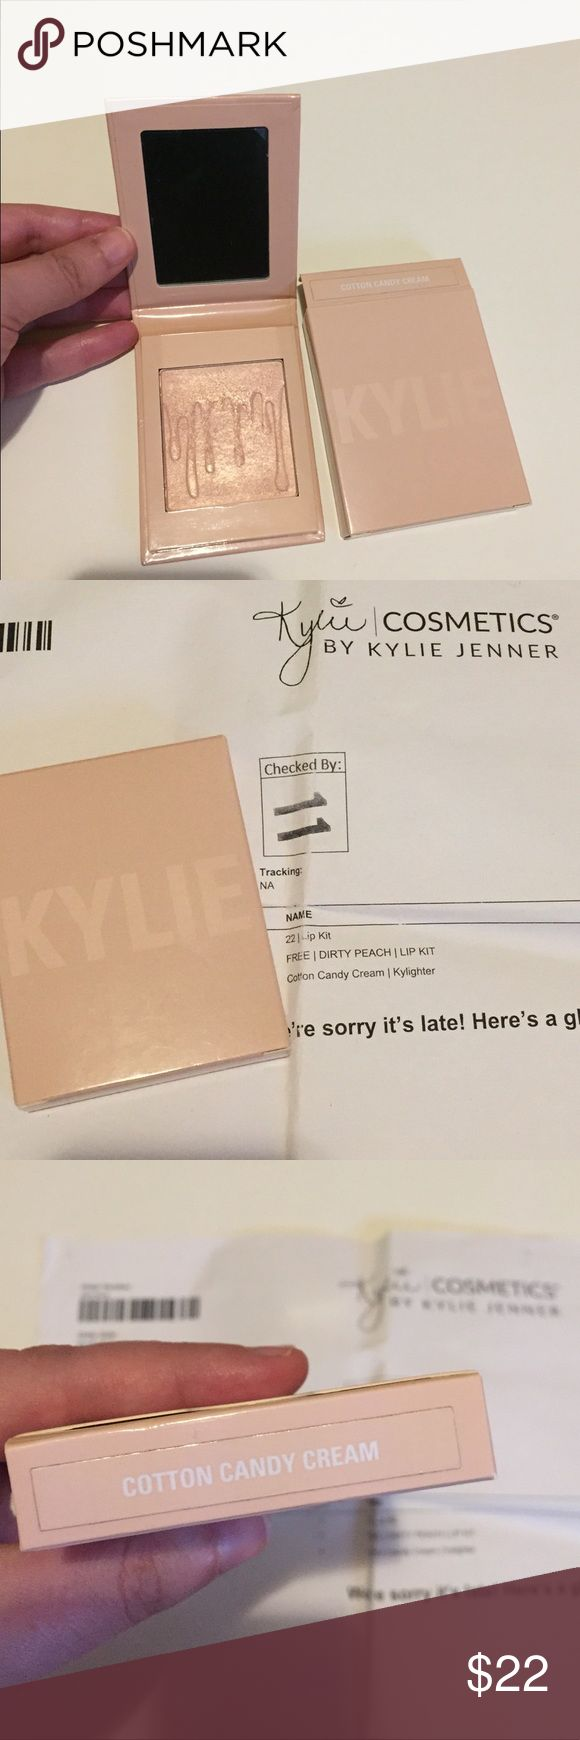 Cotton Candy Cream Kylighter . New in box. 100% authentic Kylie cosmetics Kylighter  in shade: cotton candy cream. I purchased all the kylighters from Kylie's website. This was swatched once,  this one doesn't match my skin color, it was swatched only once. Its in new condition with the box and receipt. Authentic!!! You can see the authentication number on the last photo. No trade. Kylie Cosmetics Makeup Luminizer